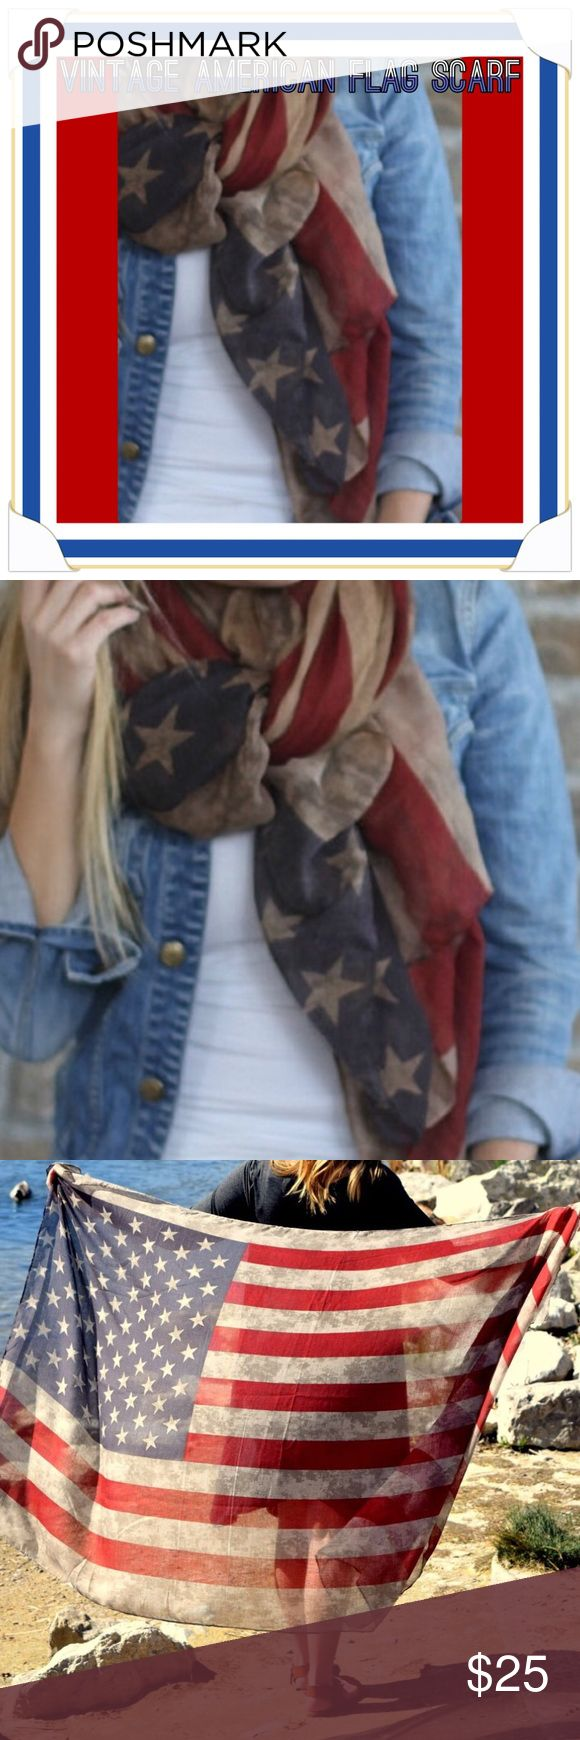 "Vintage American Flag Scarf Show your American Pride in Style! This full ""blanket size"" vintage American Flag scarf is a must have in every girl's wardrobe! Wear it on the Fourth or any time during the summer for a great patriotic look! The options for styling are endless. This item is New in Packaging from online site-no tags attached. This scarf is amazing!!! No low ballers please. Use the OFFER BUTTON for pricing inquires. Thanks!!! Accessories Scarves & Wraps"